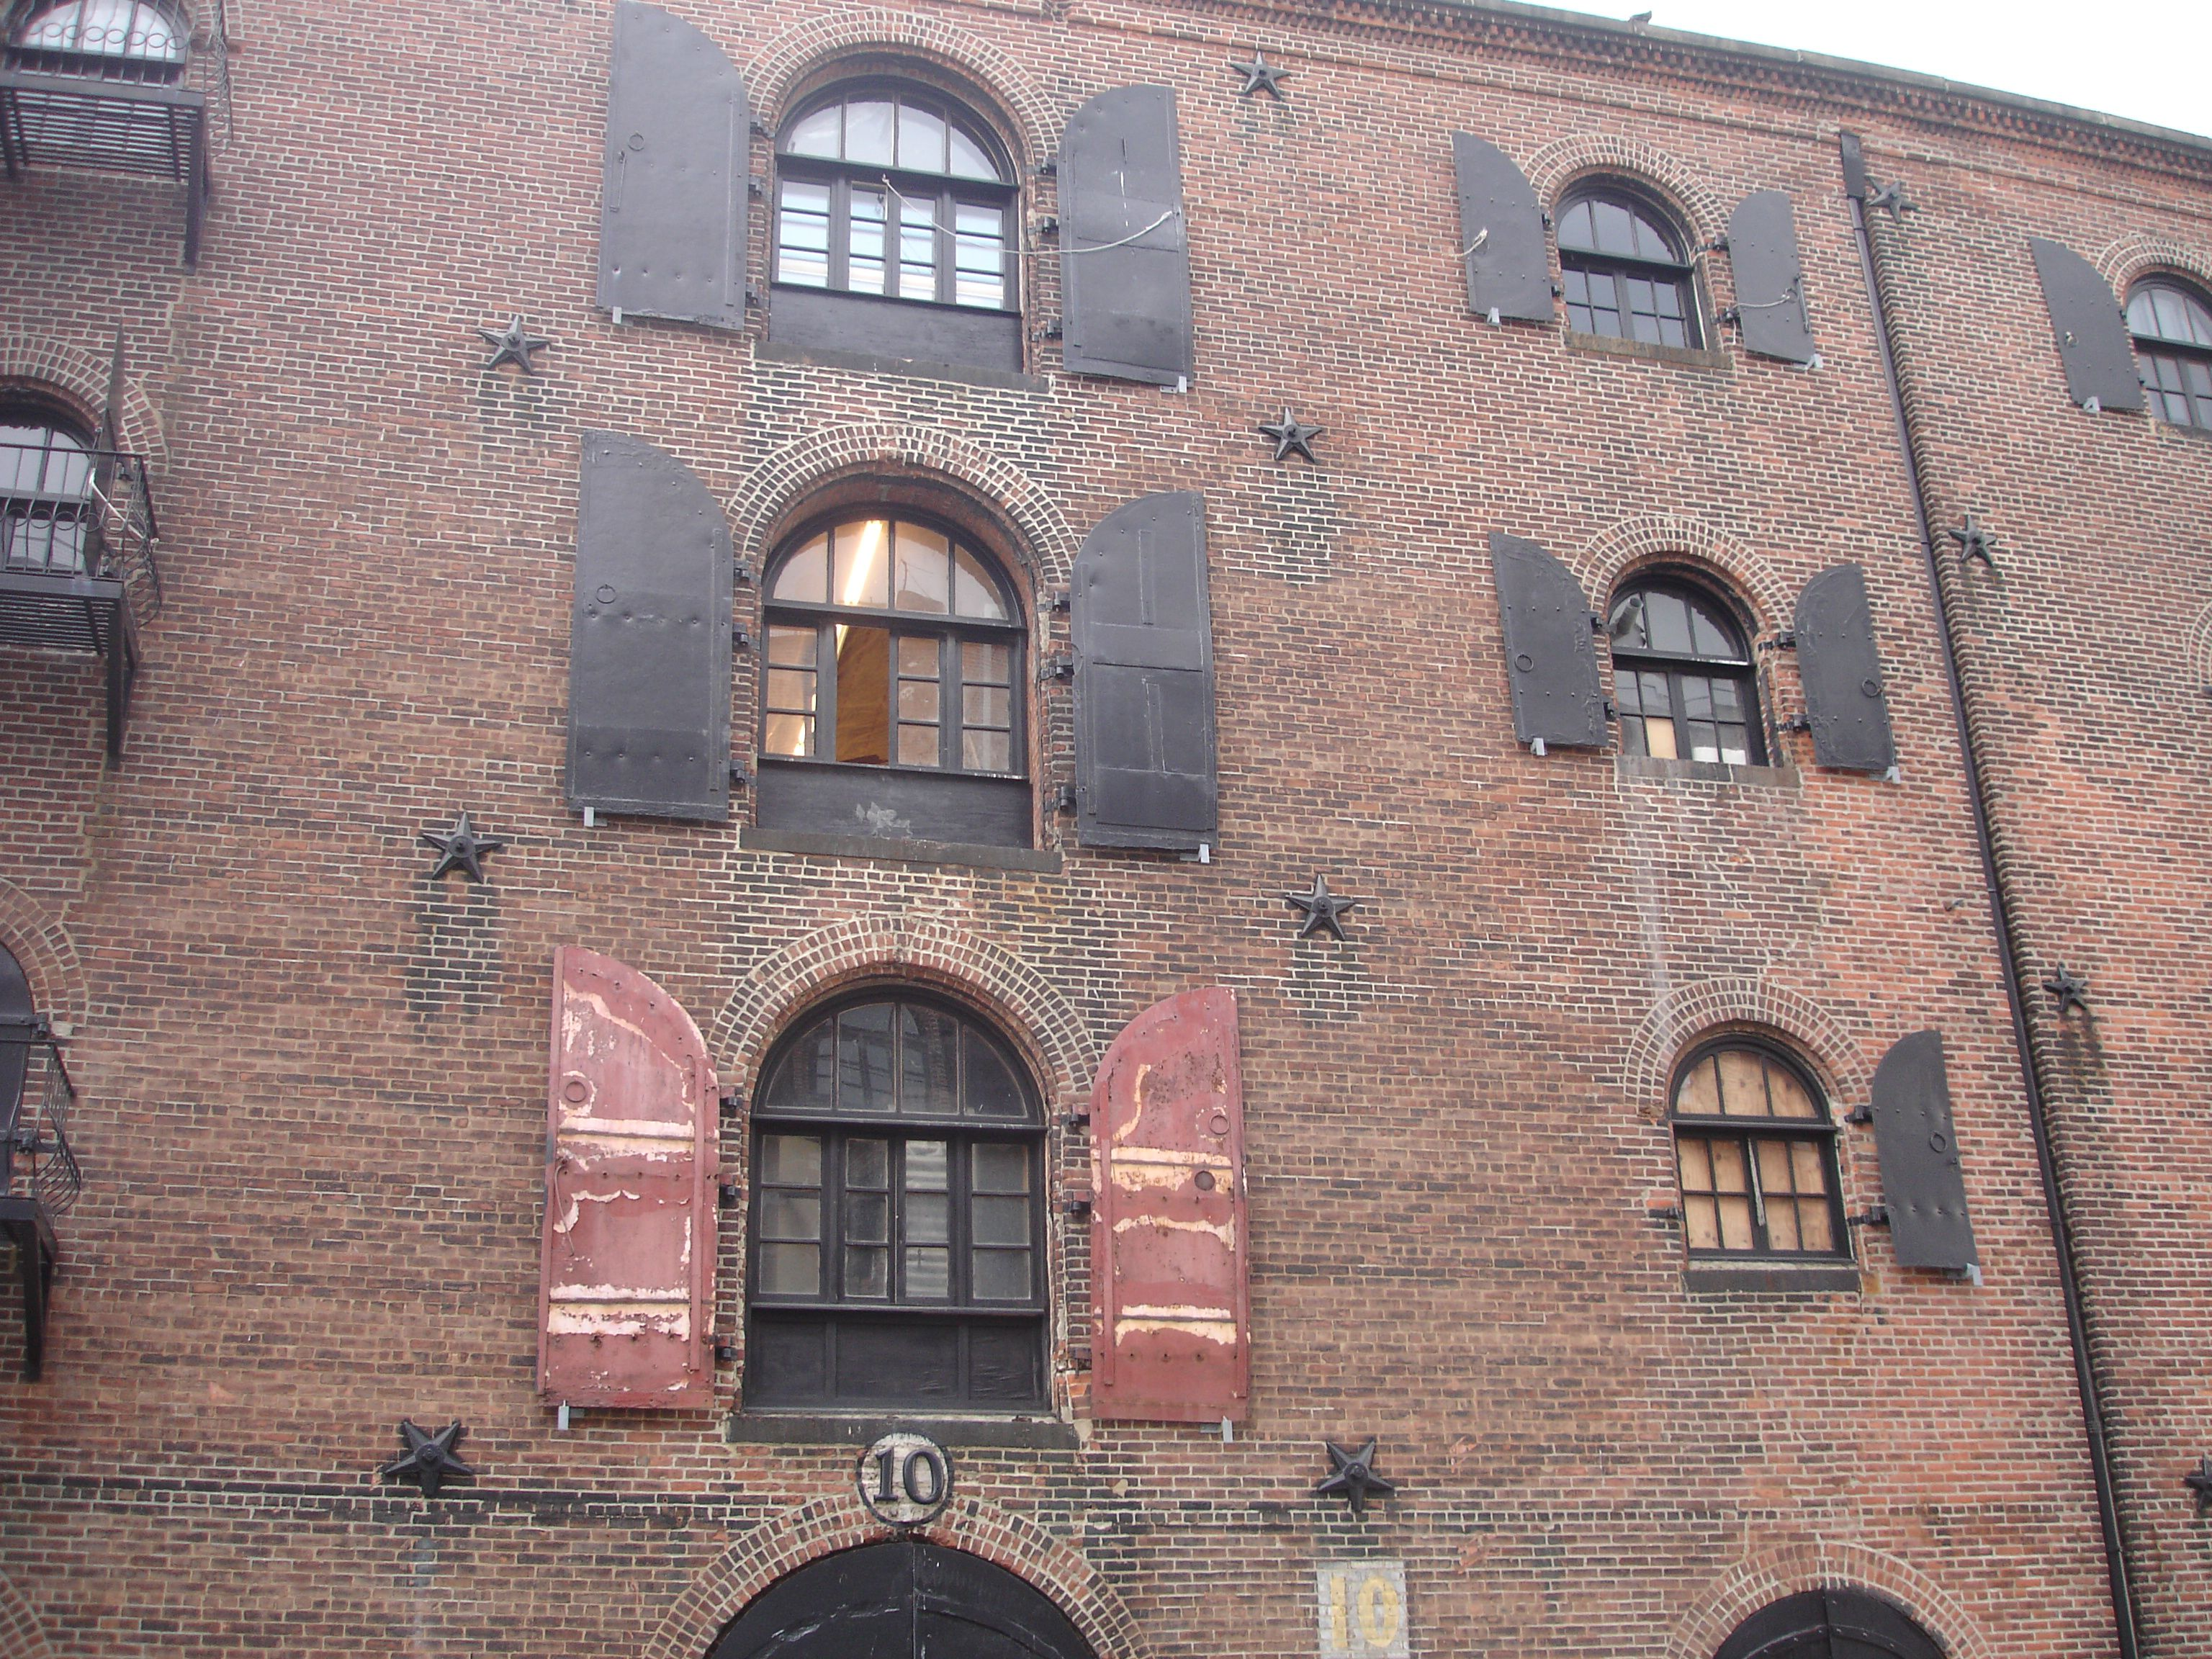 In Red Hook Brooklyn, huge waterfront warehouses such as this have been adaptively reused as artists work spaces and apartments.